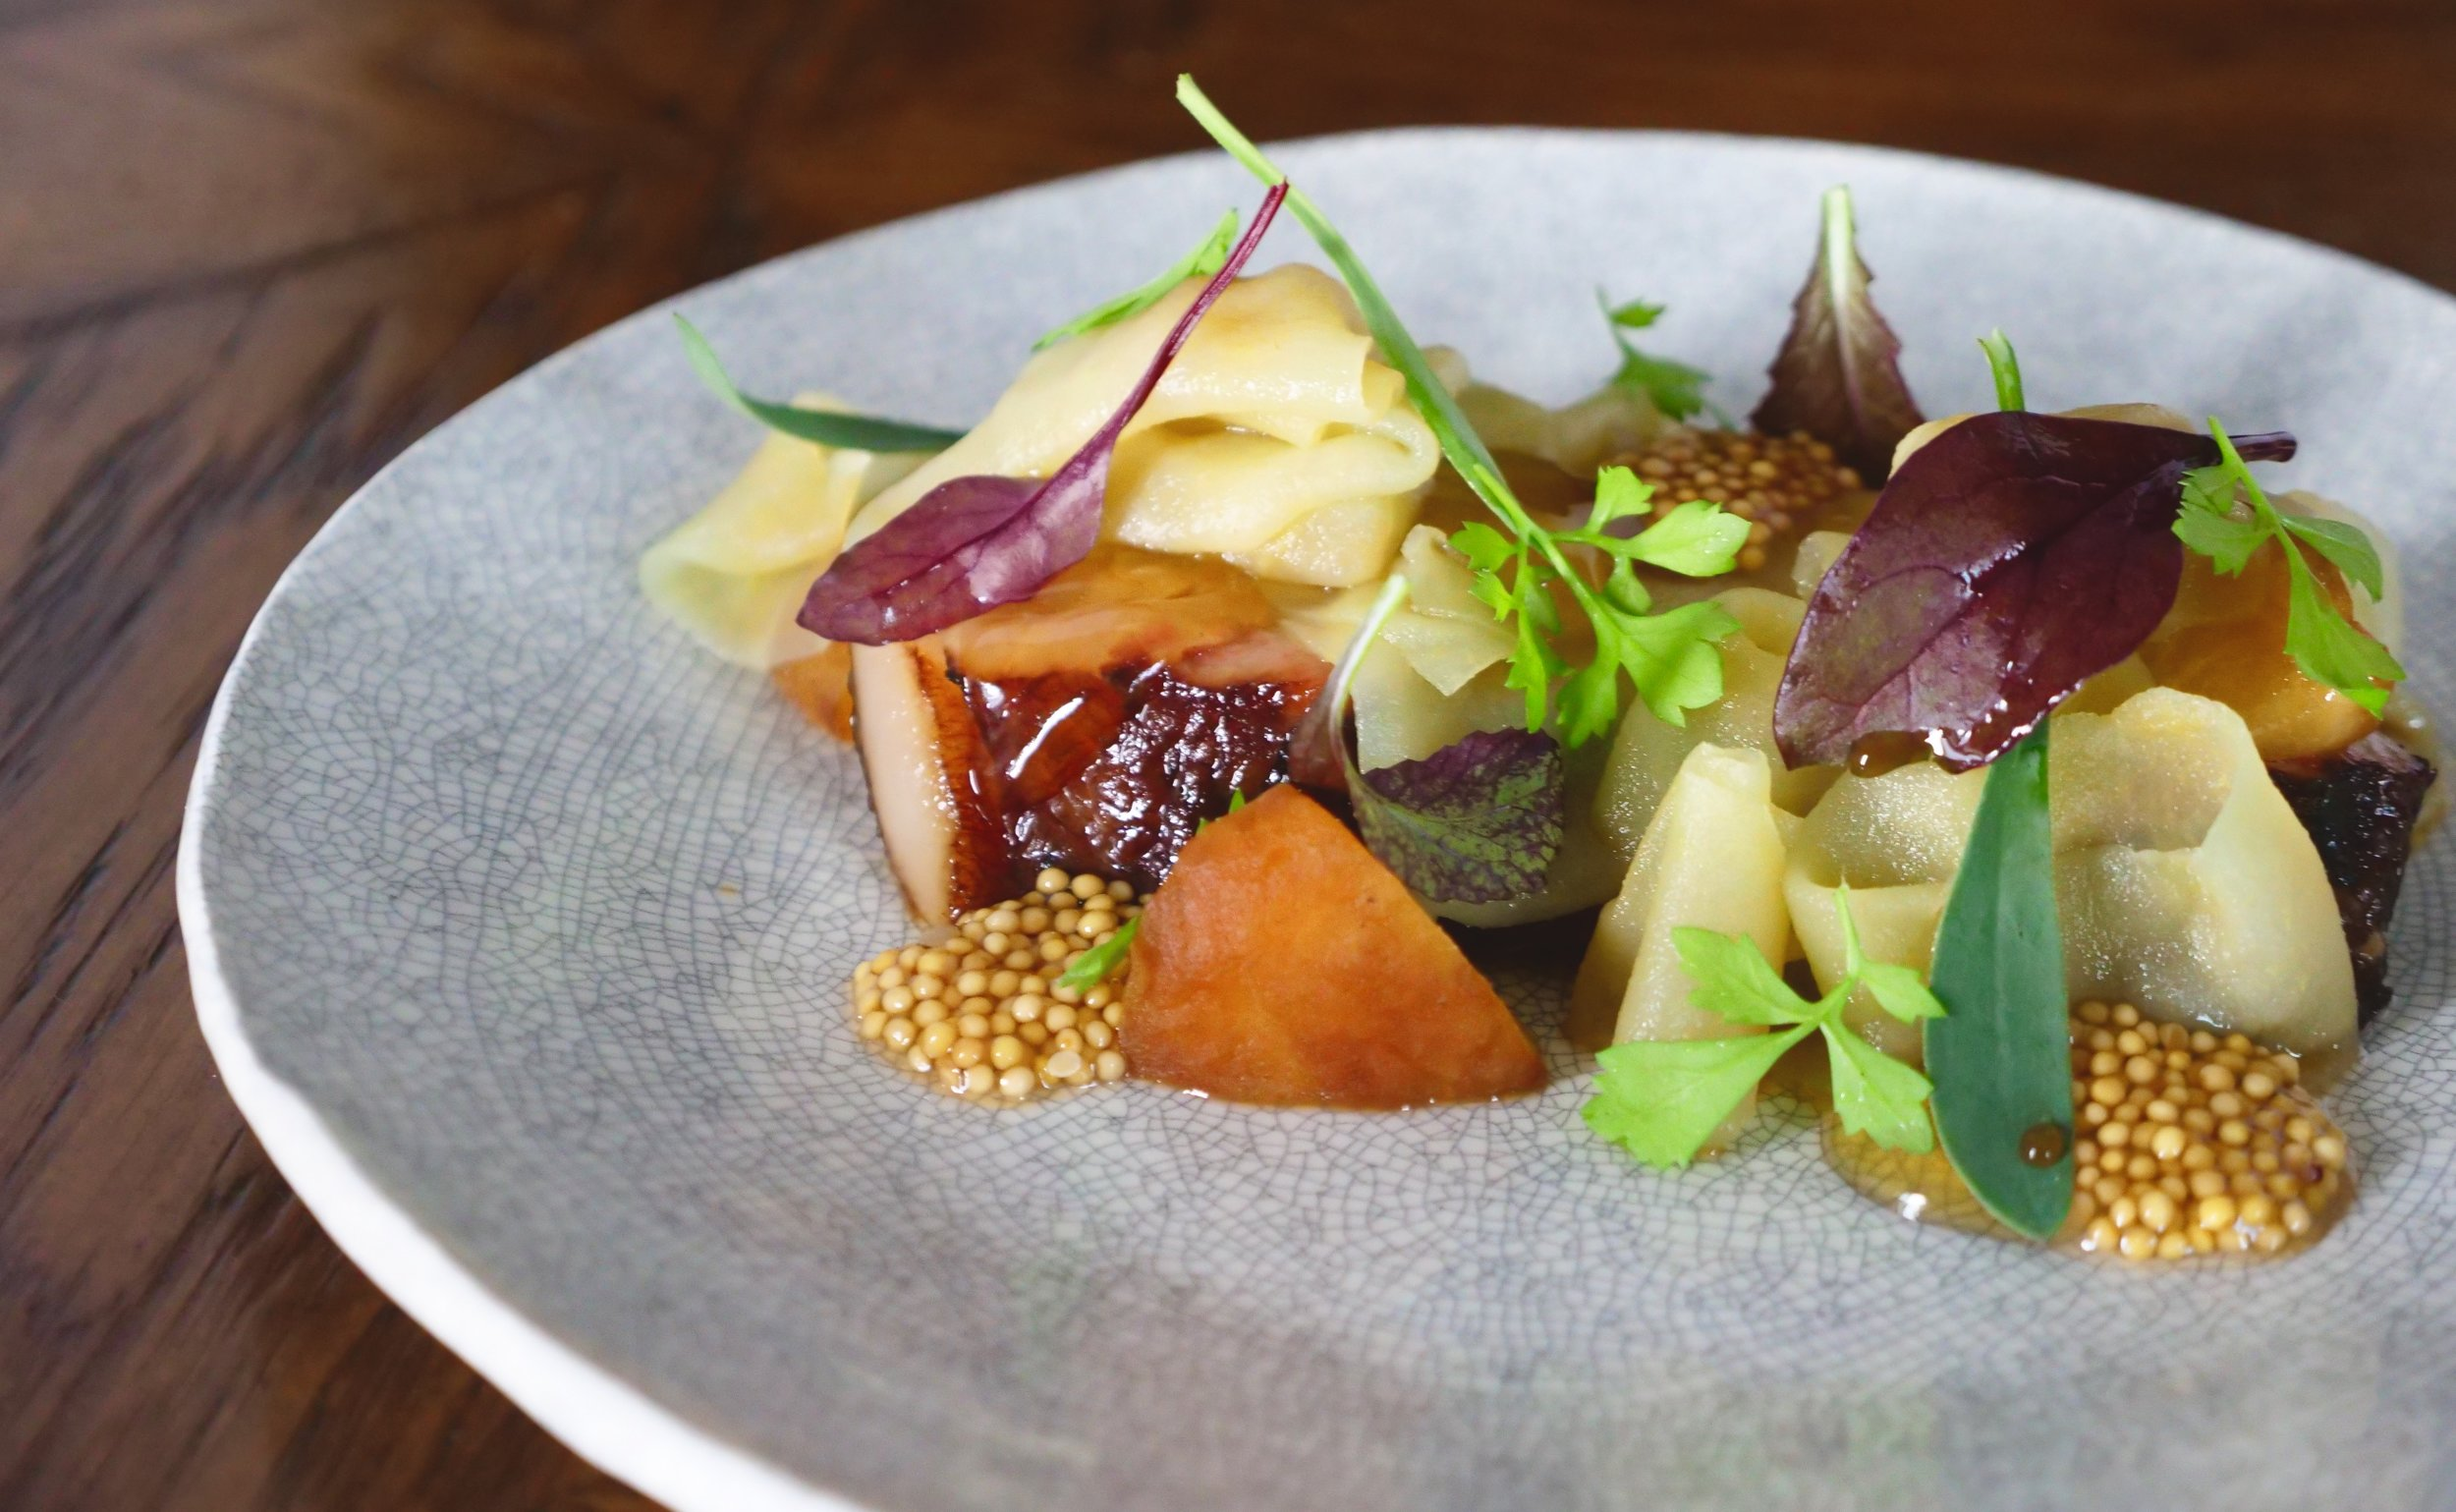 HICKORY SMOKED PORK JOWL, APPLE RIBBONS, CHARRED GALA APPLE, PICKLED MUSTARD, HONEY GEL & HERBS.